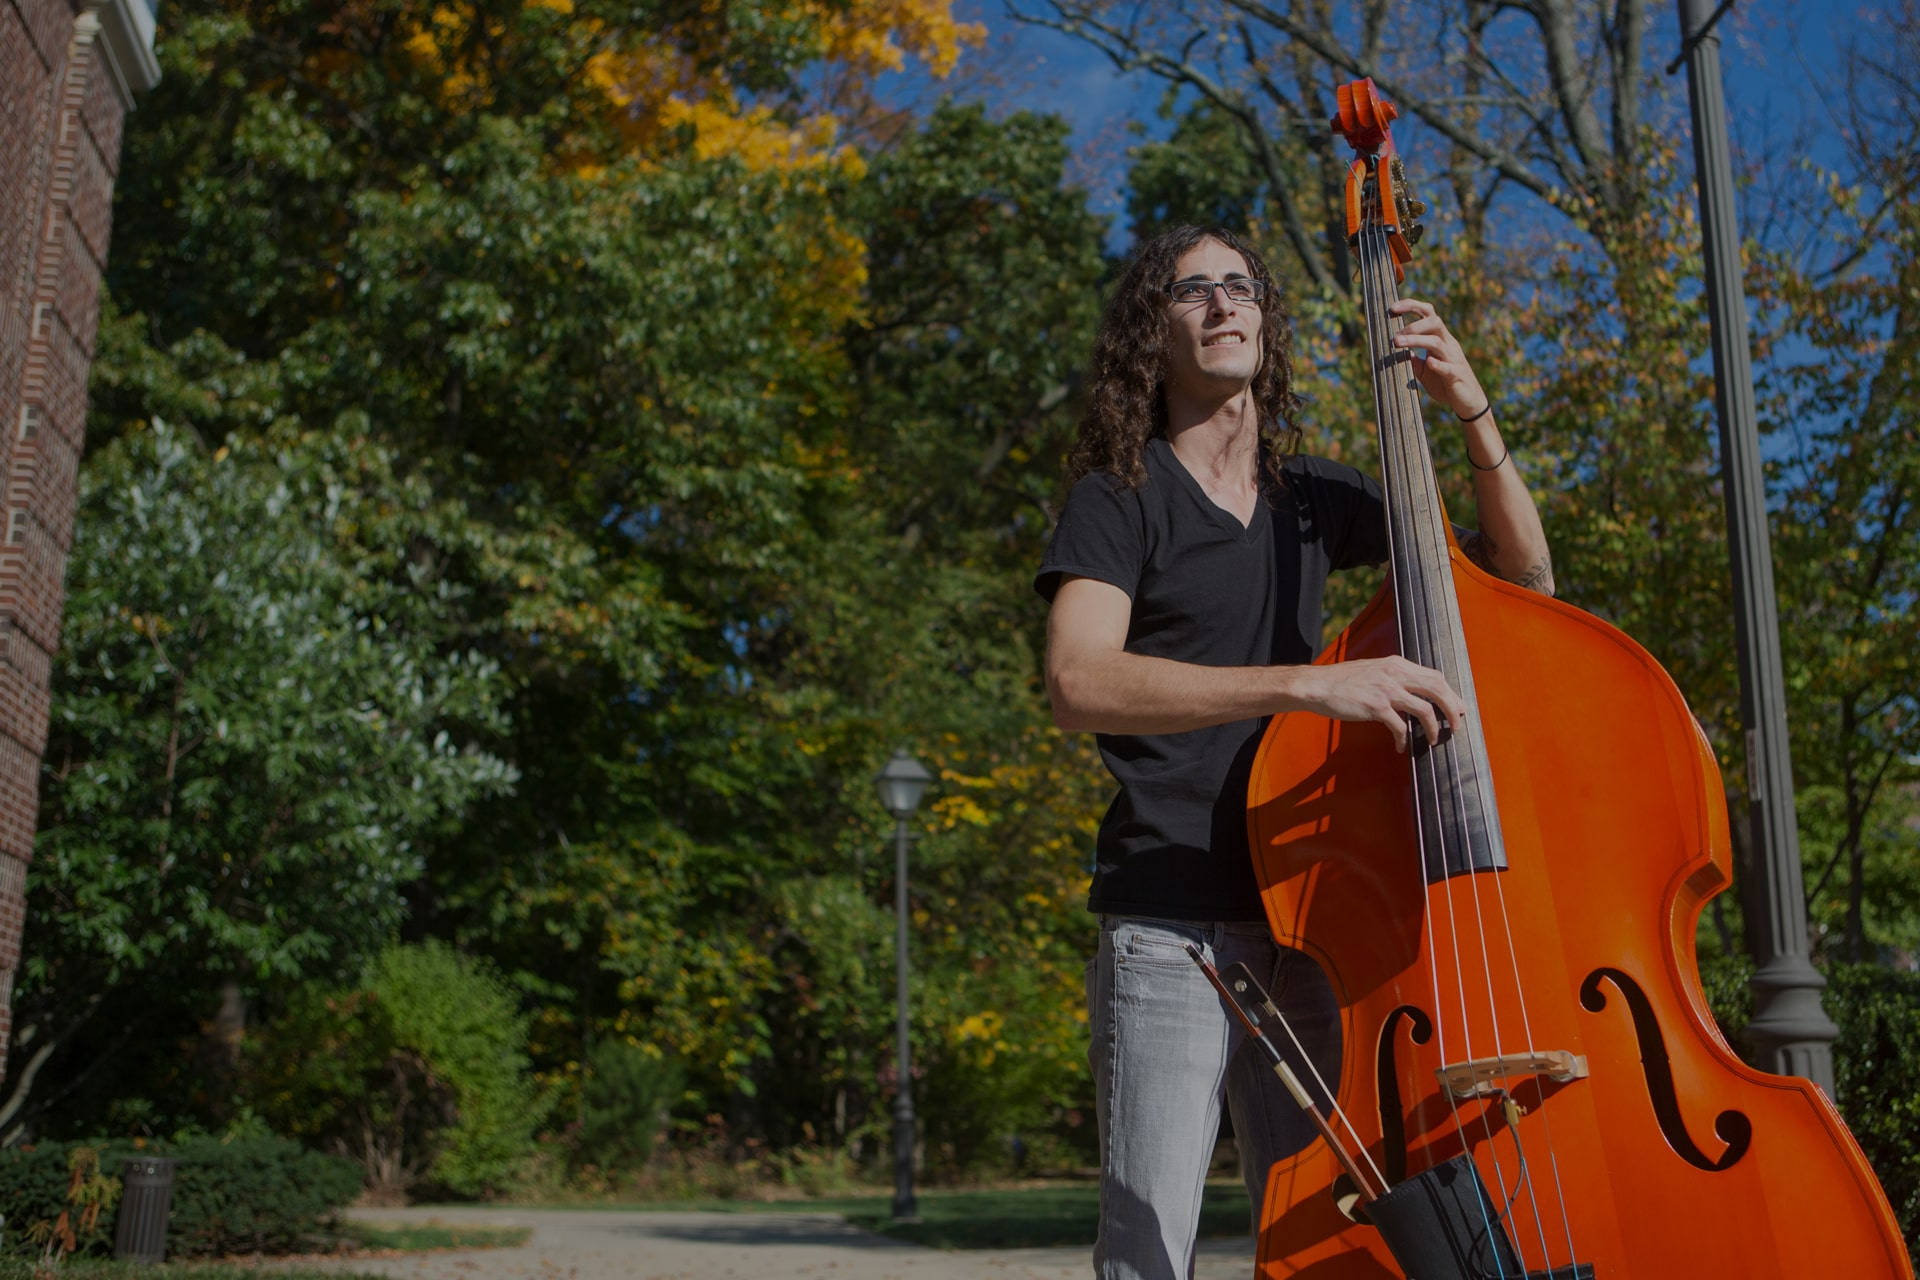 TCNJ student playing a double bass outside of Music Building